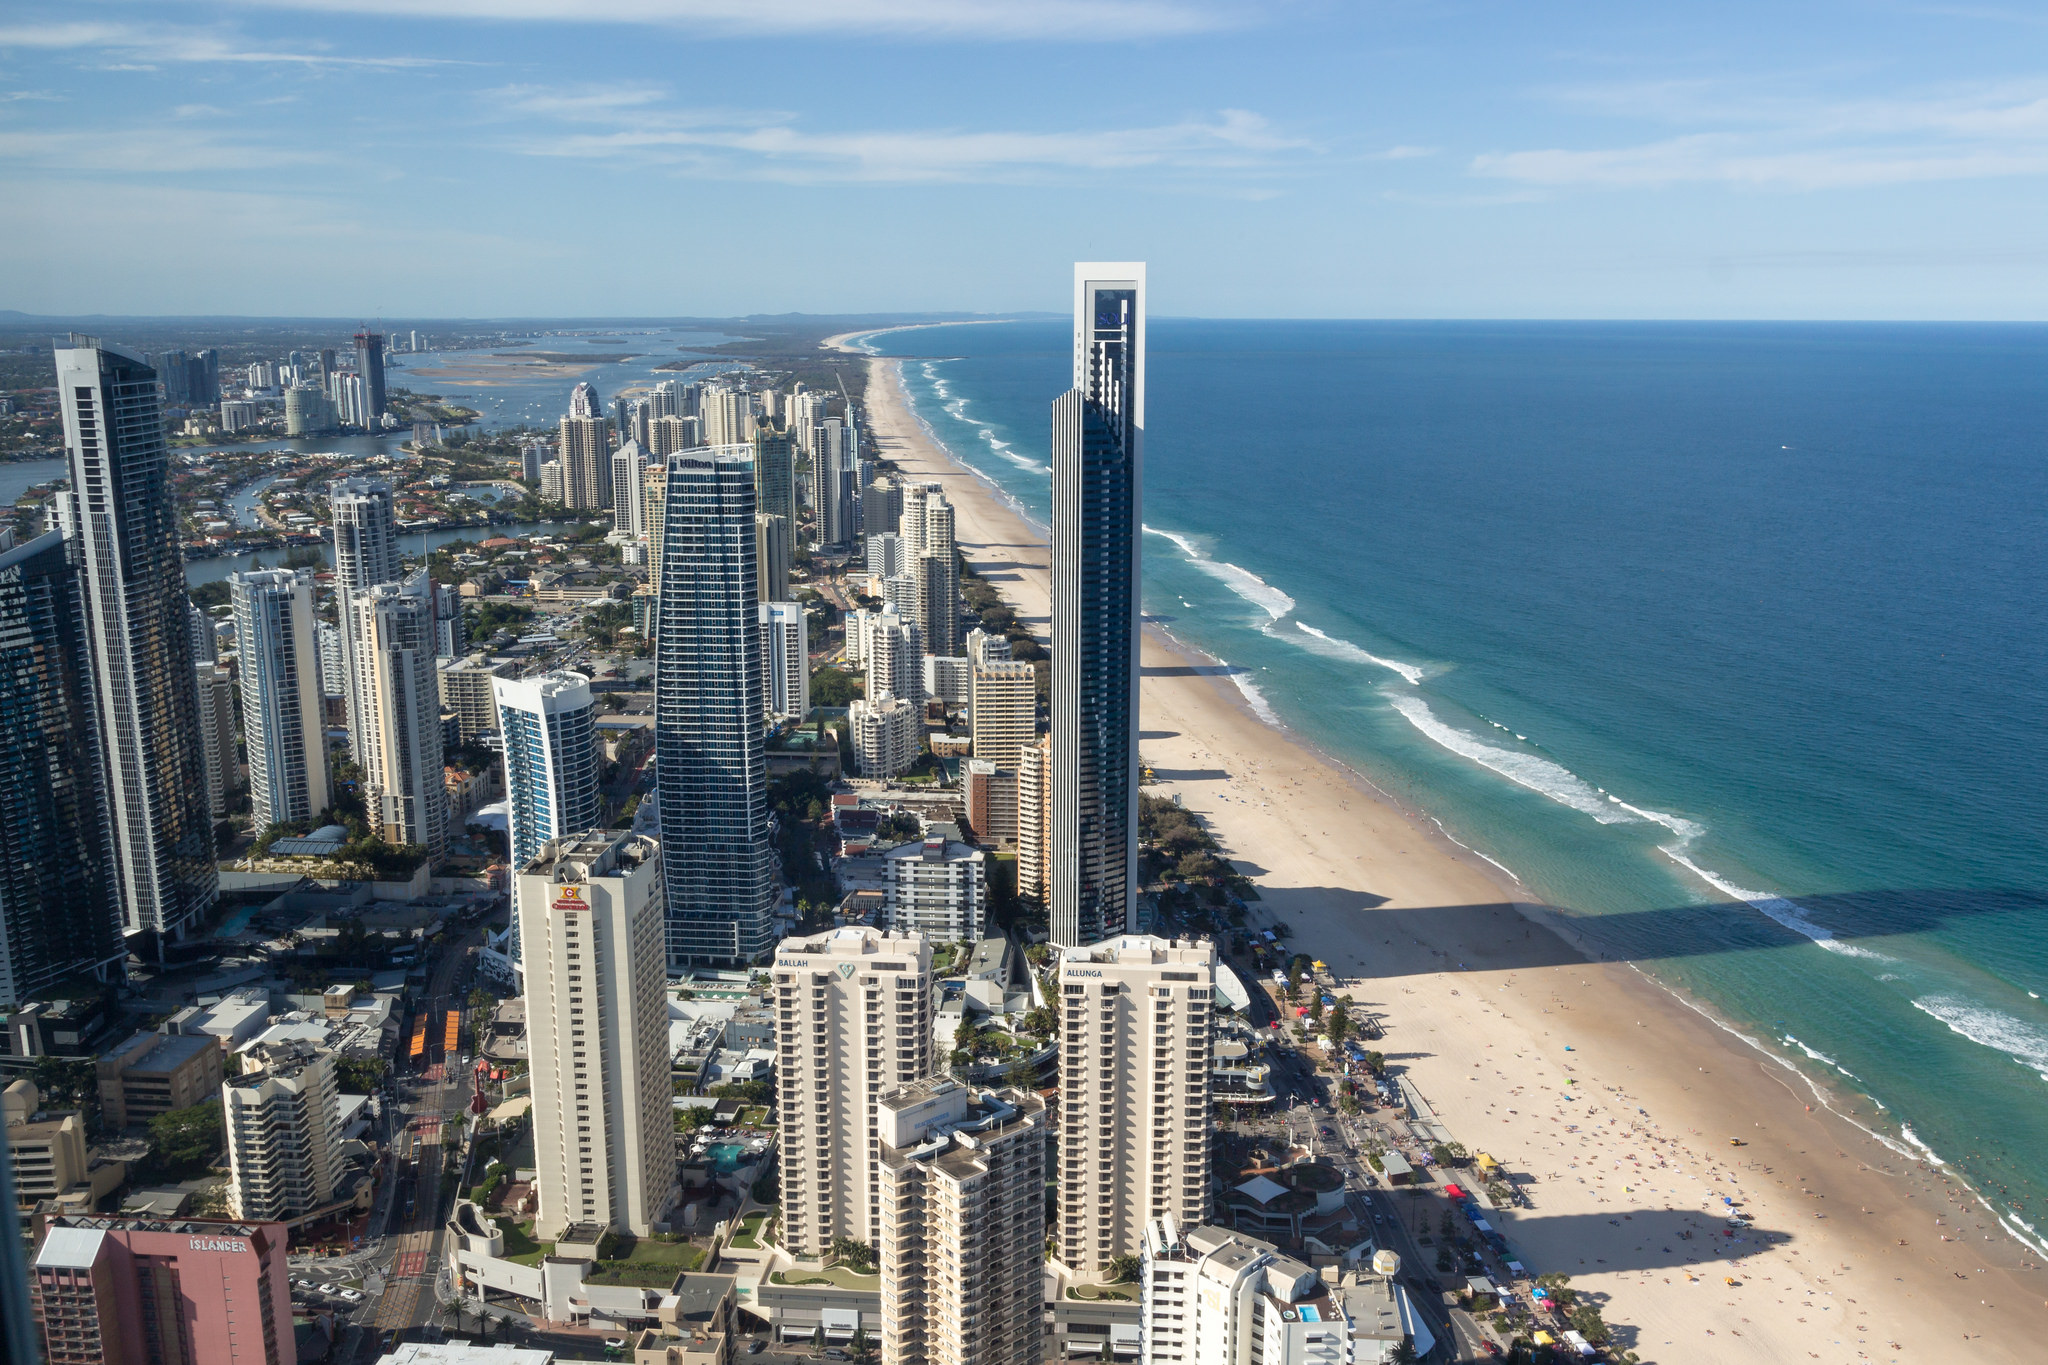 Sky Point Observation Deck - Surfer's Paradise, Australia